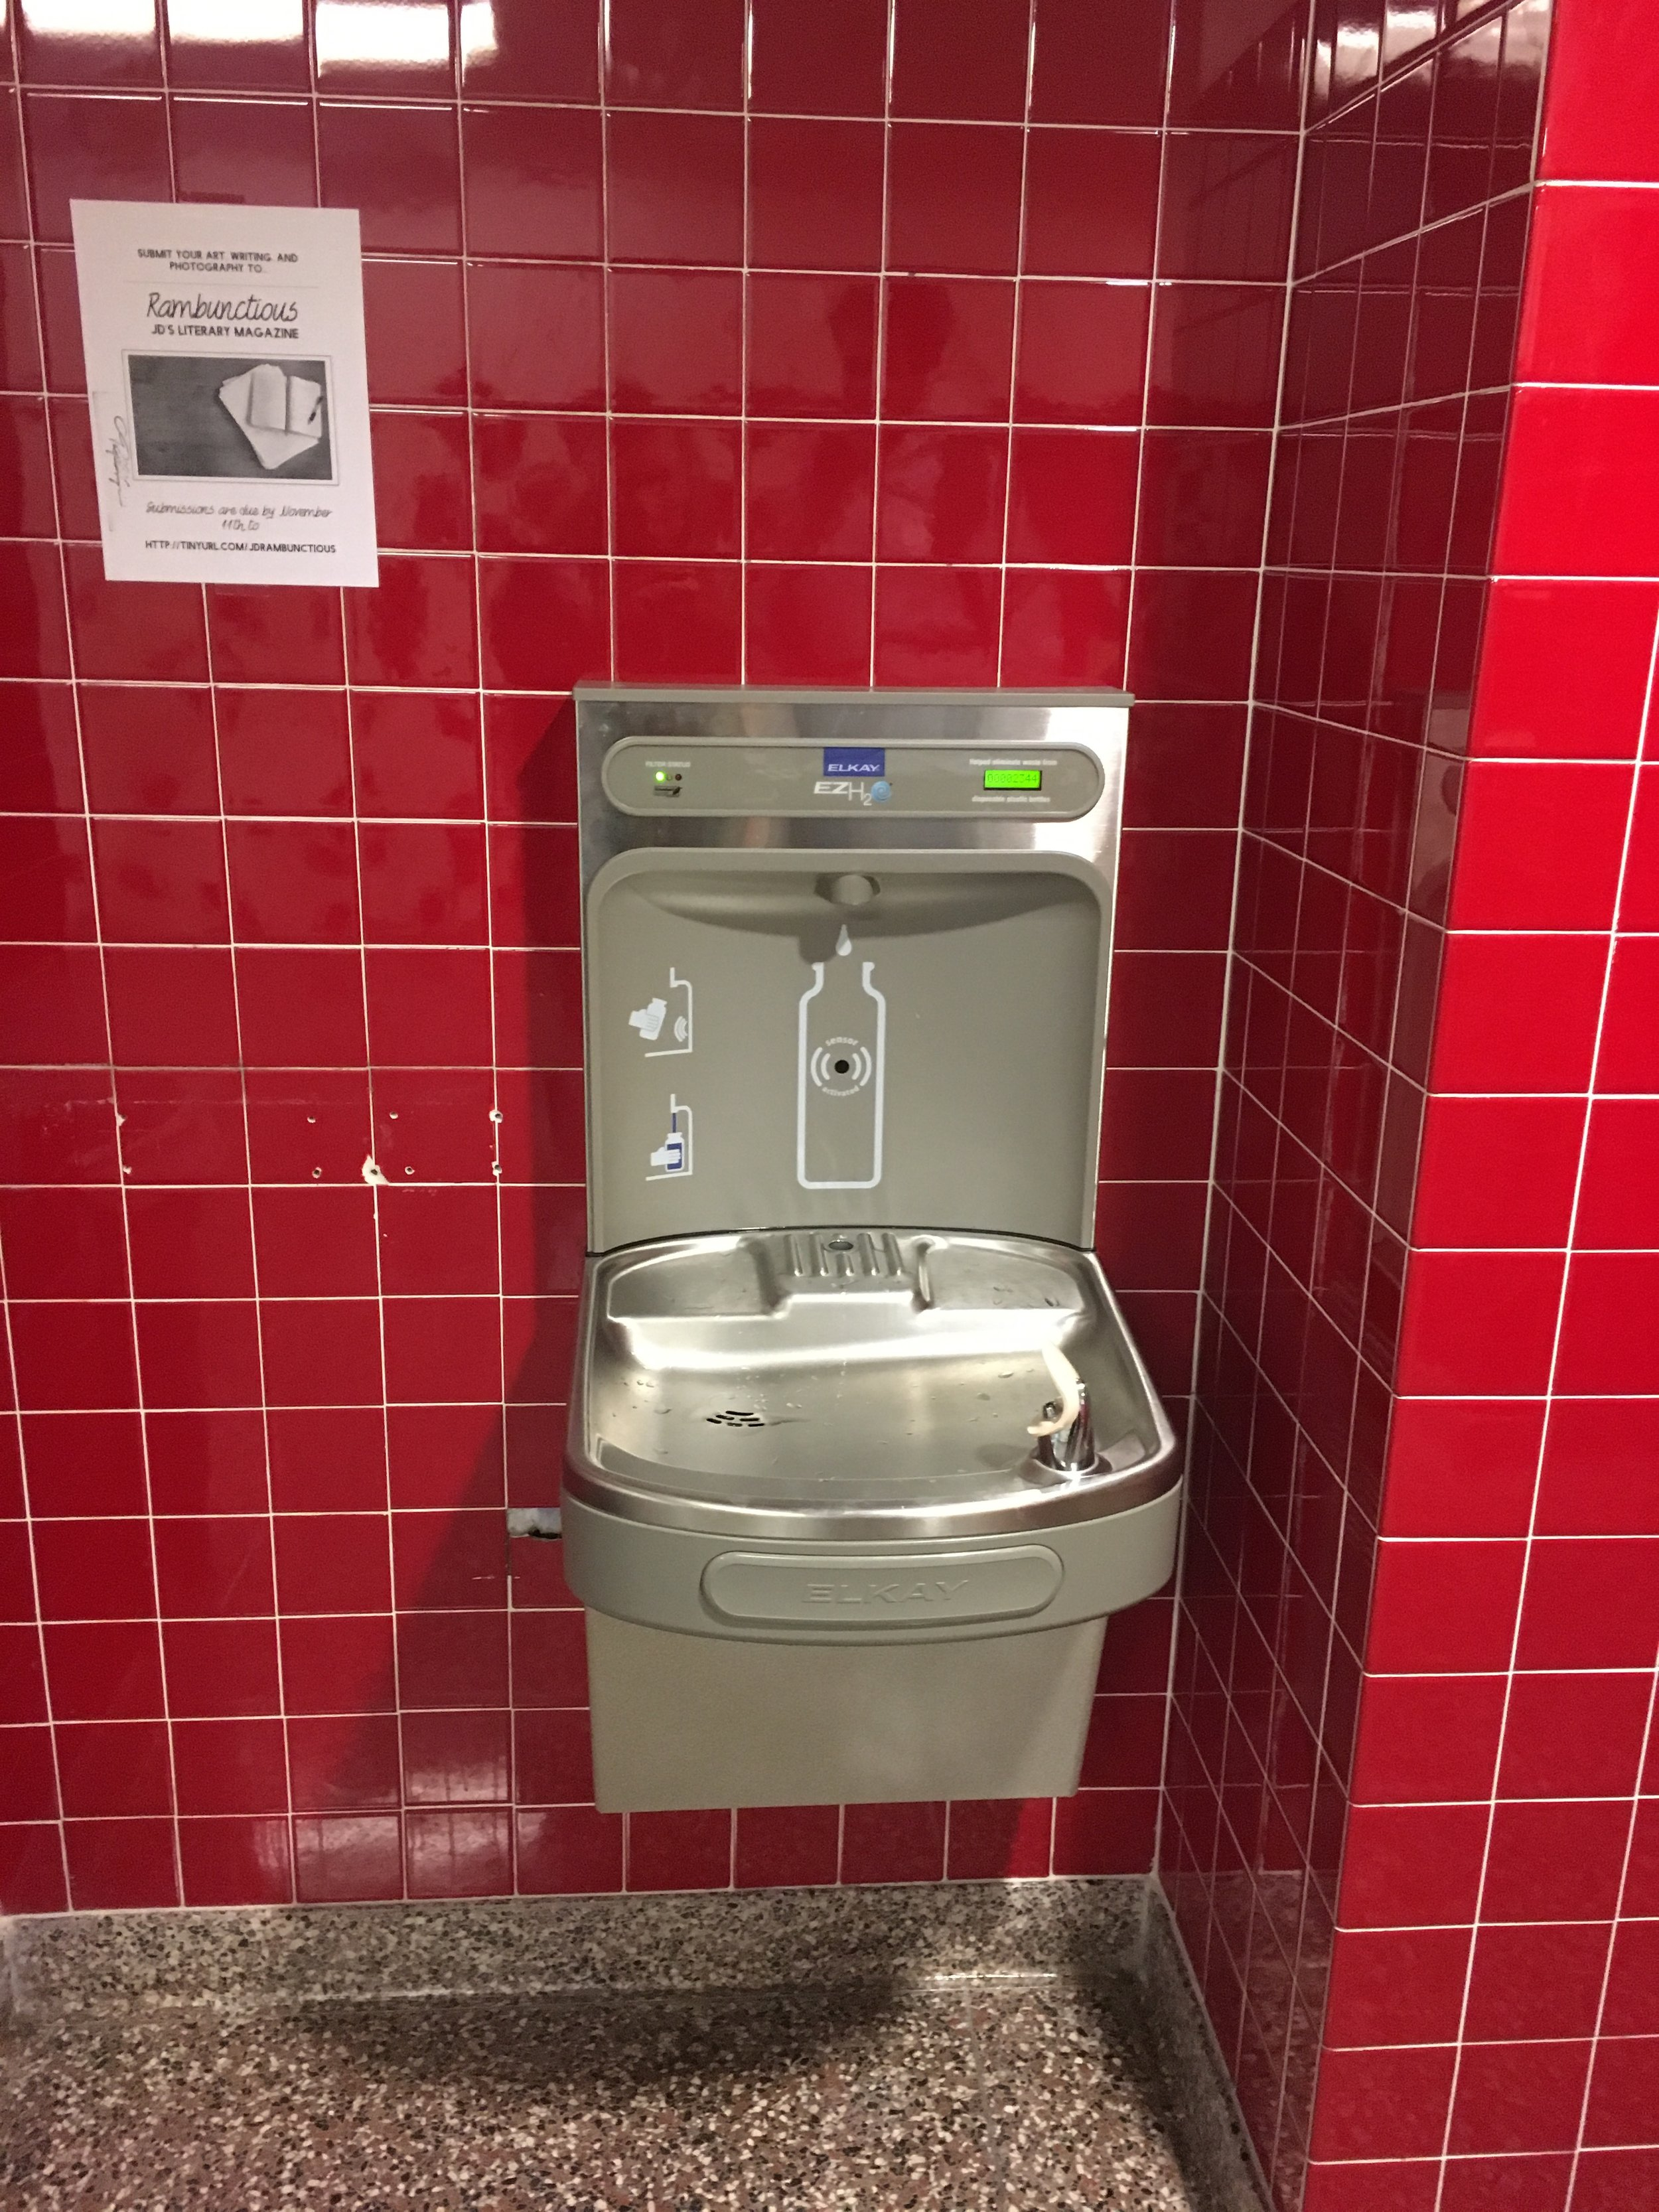 The new and improved Red Hall water fountain shows new water saving technology, but there are small holes in the wall to the left of the fountain.